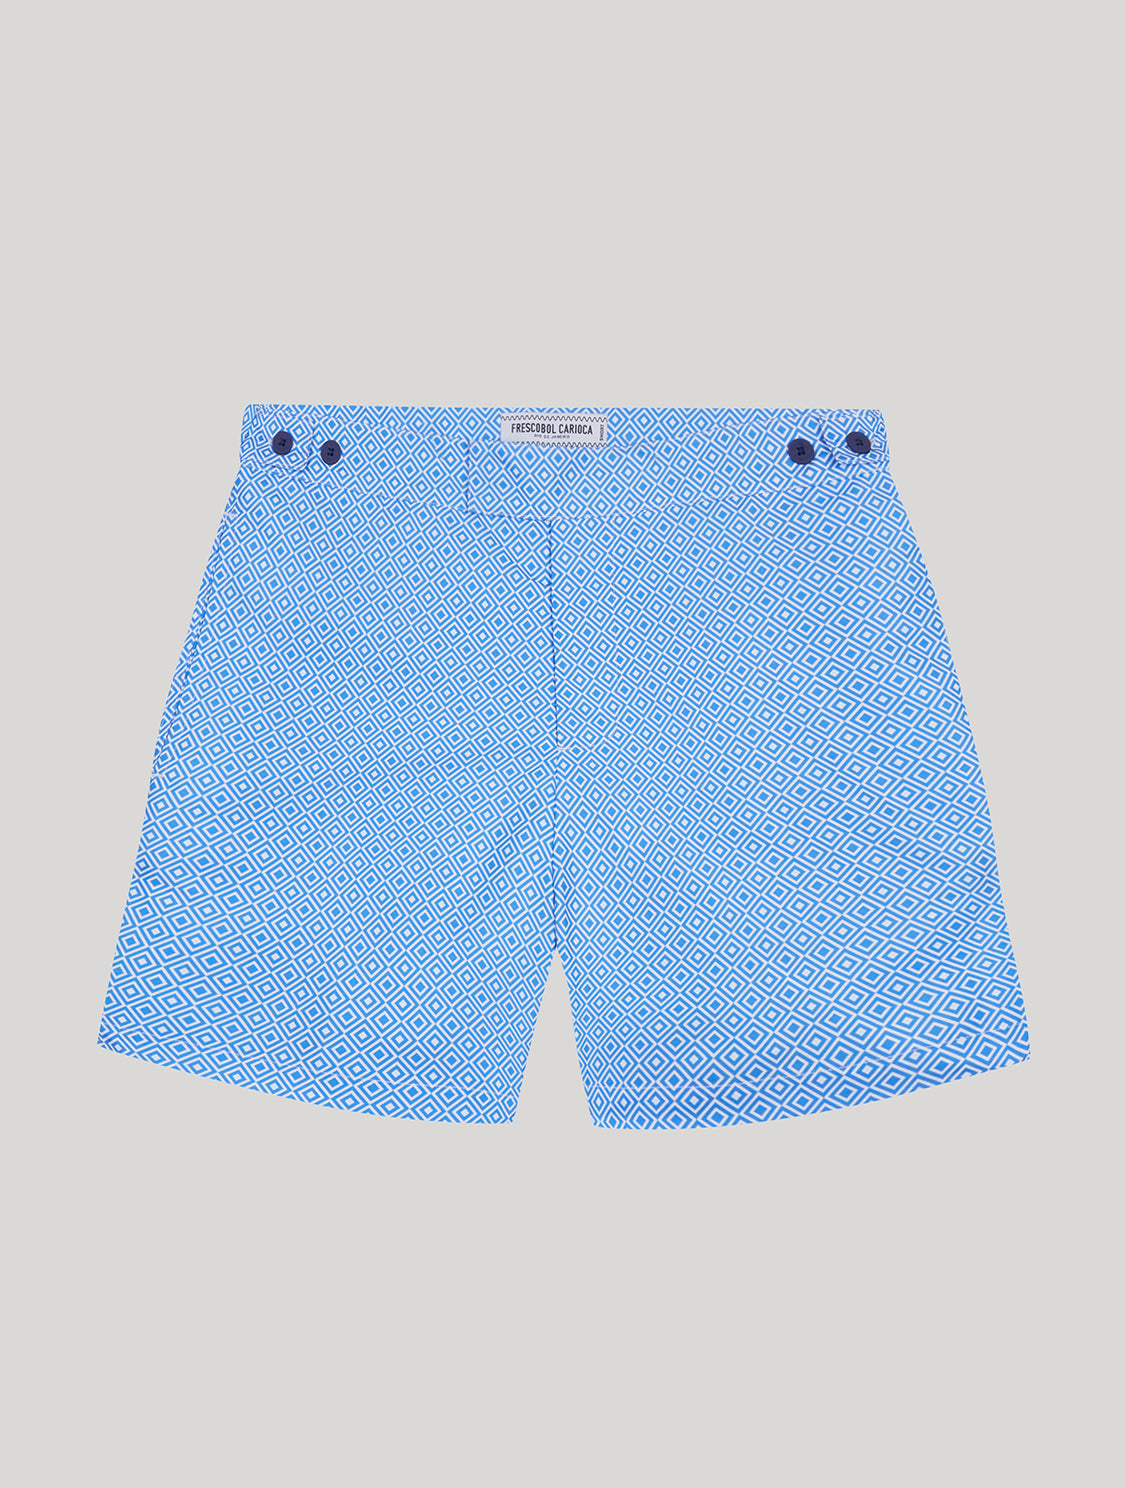 TAILORED SWIM SHORTS ANGRA PRINT